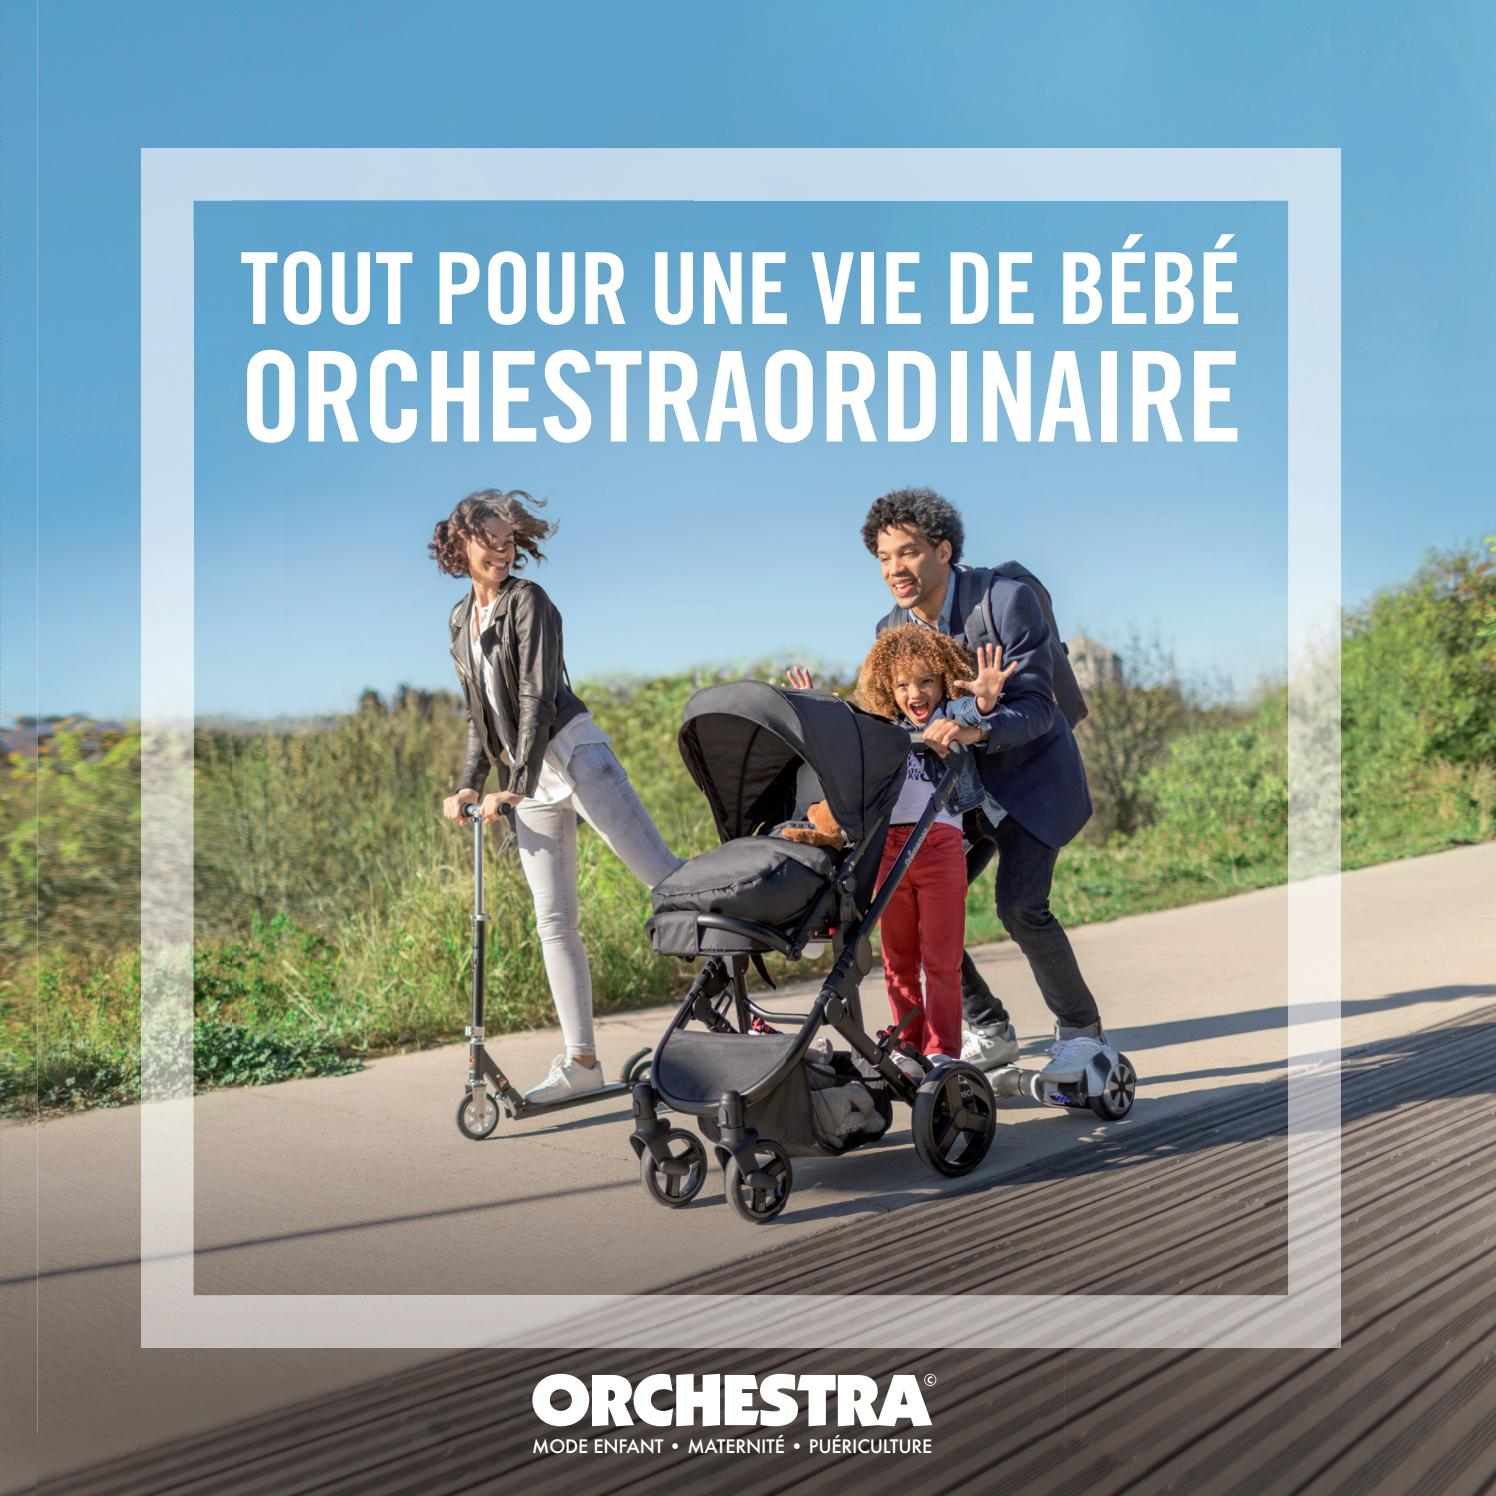 Catalogue Orchestra puériculture 2018 - FRANCE by Orchestra - issuu 1fdce5fff8c